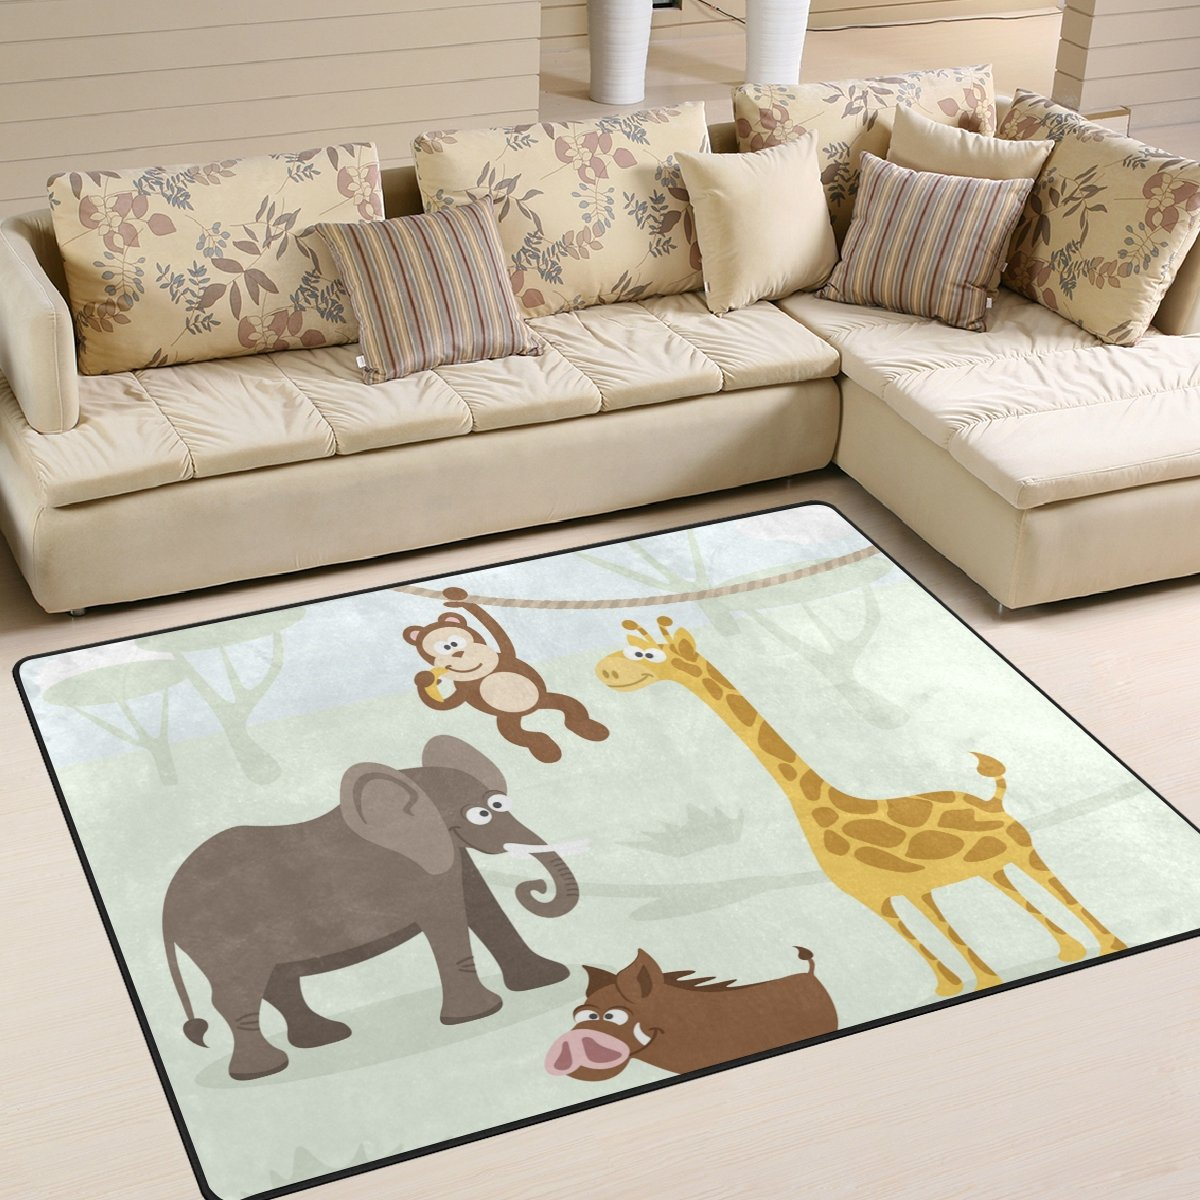 Vantaso Soft Foam Area Rugs Forest Animals Elephant Monkey Non Slip Play Mats for Kids Boys Girls Playing Room Living Room 80x58 inch by Vantaso (Image #2)